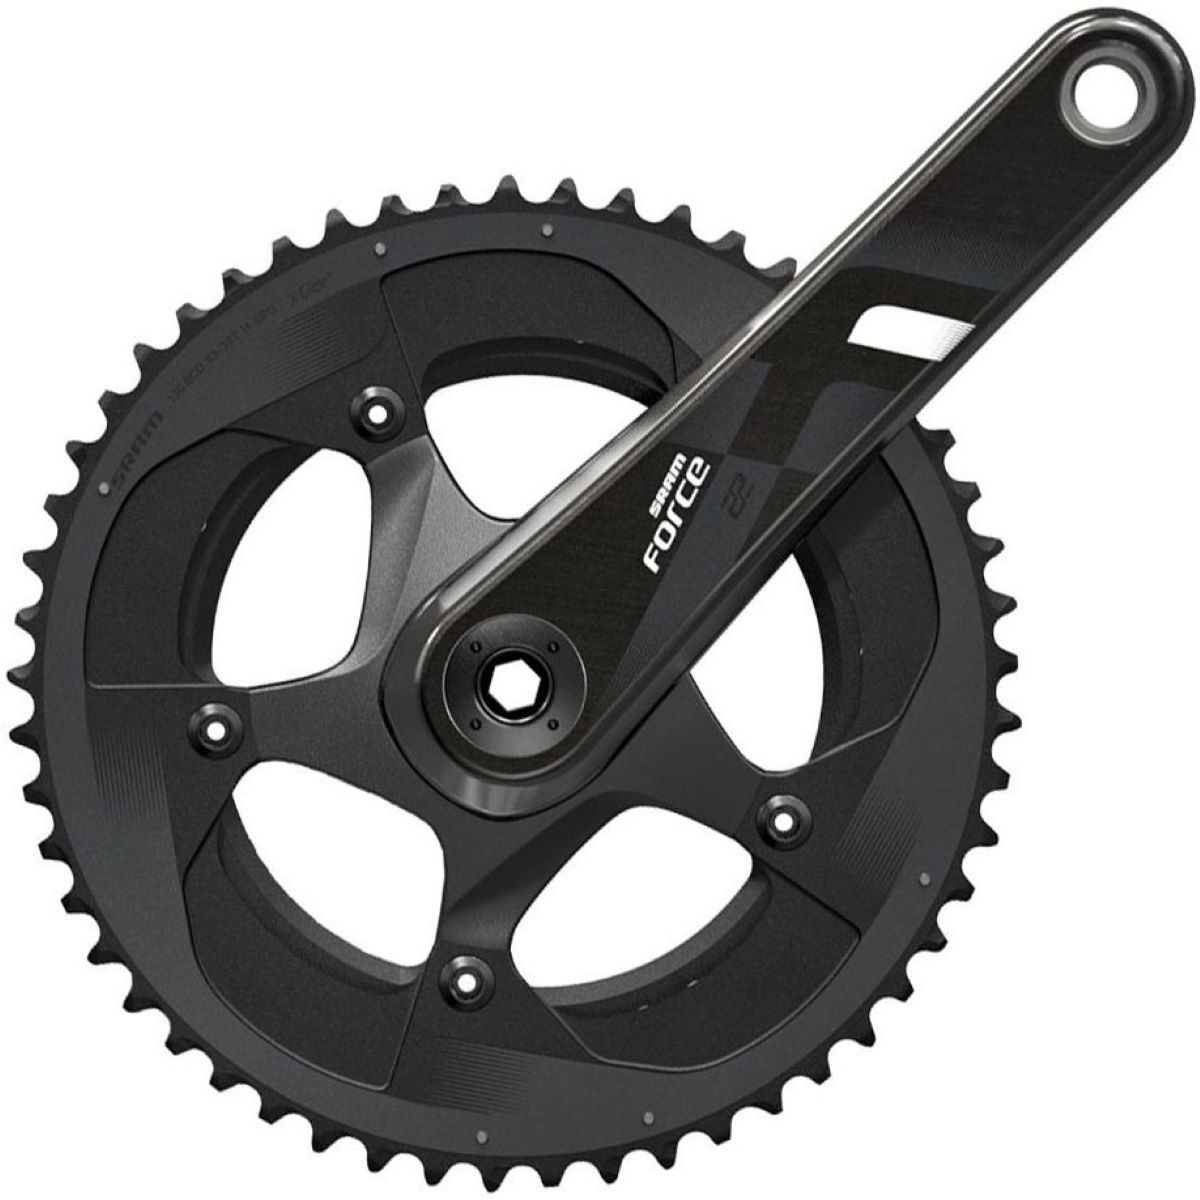 SRAM SRAM Force 22 GXP Double Chainset   Chainsets